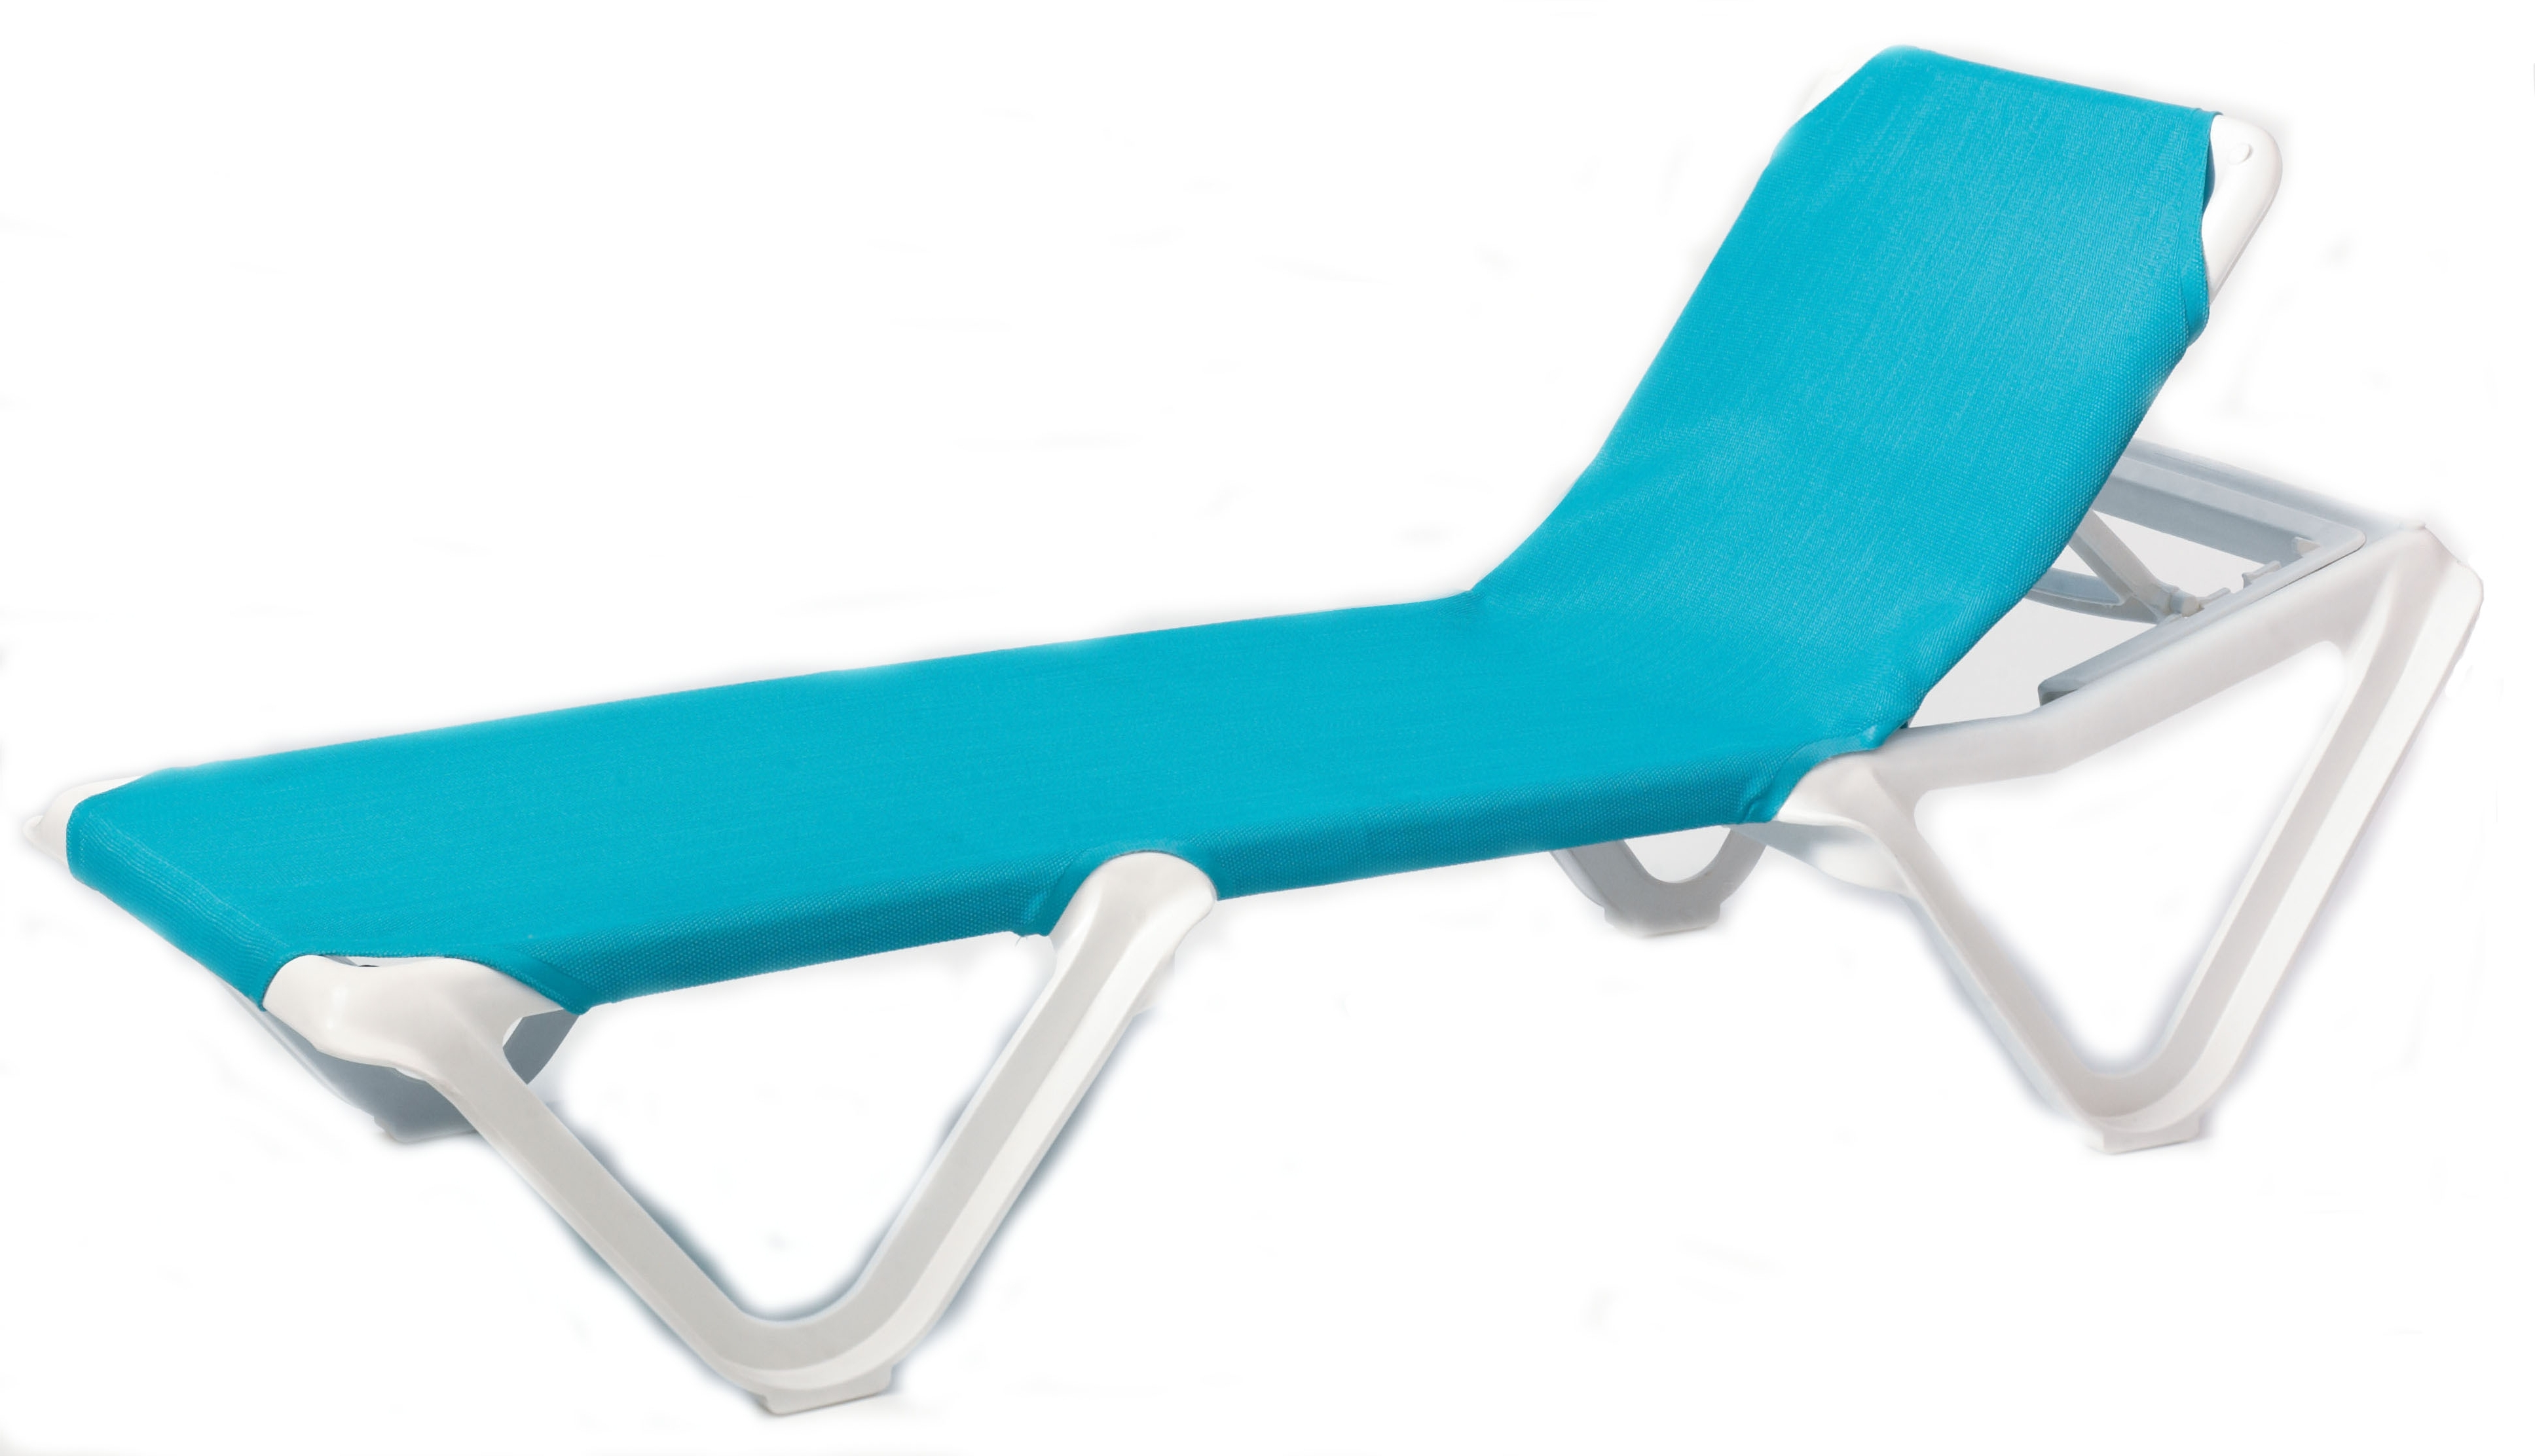 Enjoy The Sunshine Well Through Pool Chaise Lounge Chairs Regarding Fashionable Outdoor Chaise Lounge Chairs Under $ (View 4 of 15)